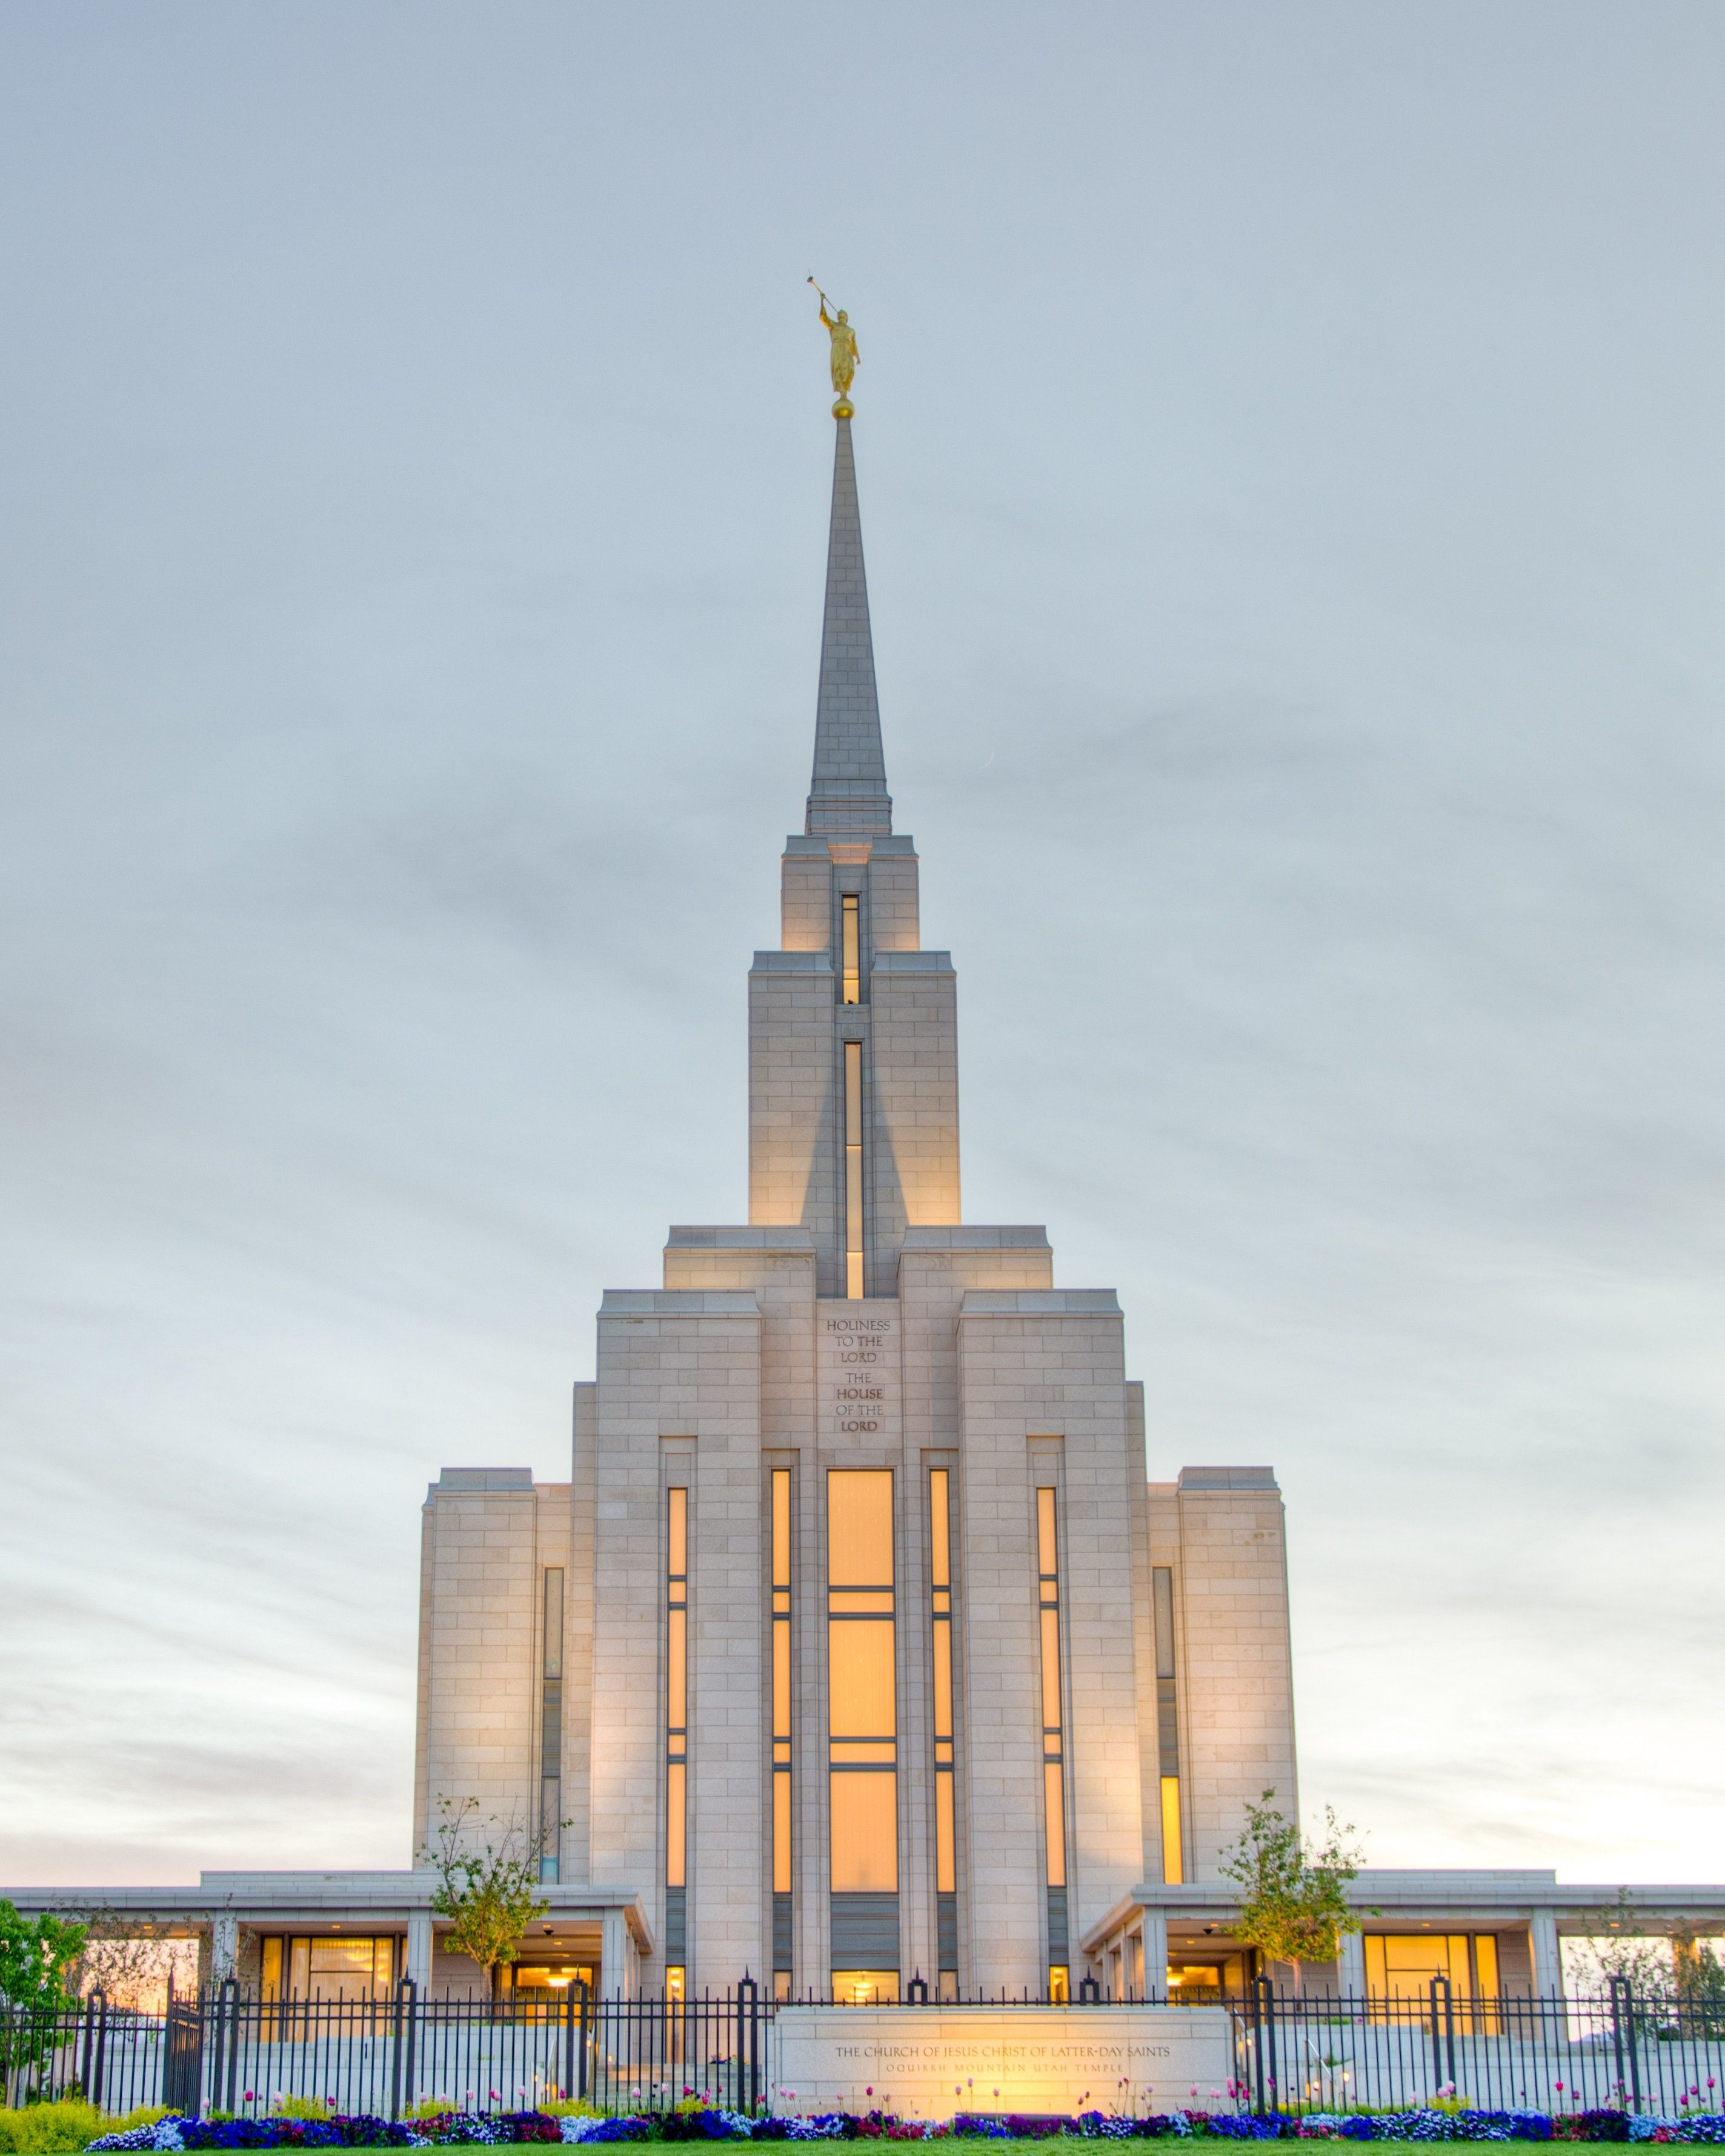 The Oquirrh Mountain Utah Temple, including the name sign, entrance, and scenery.